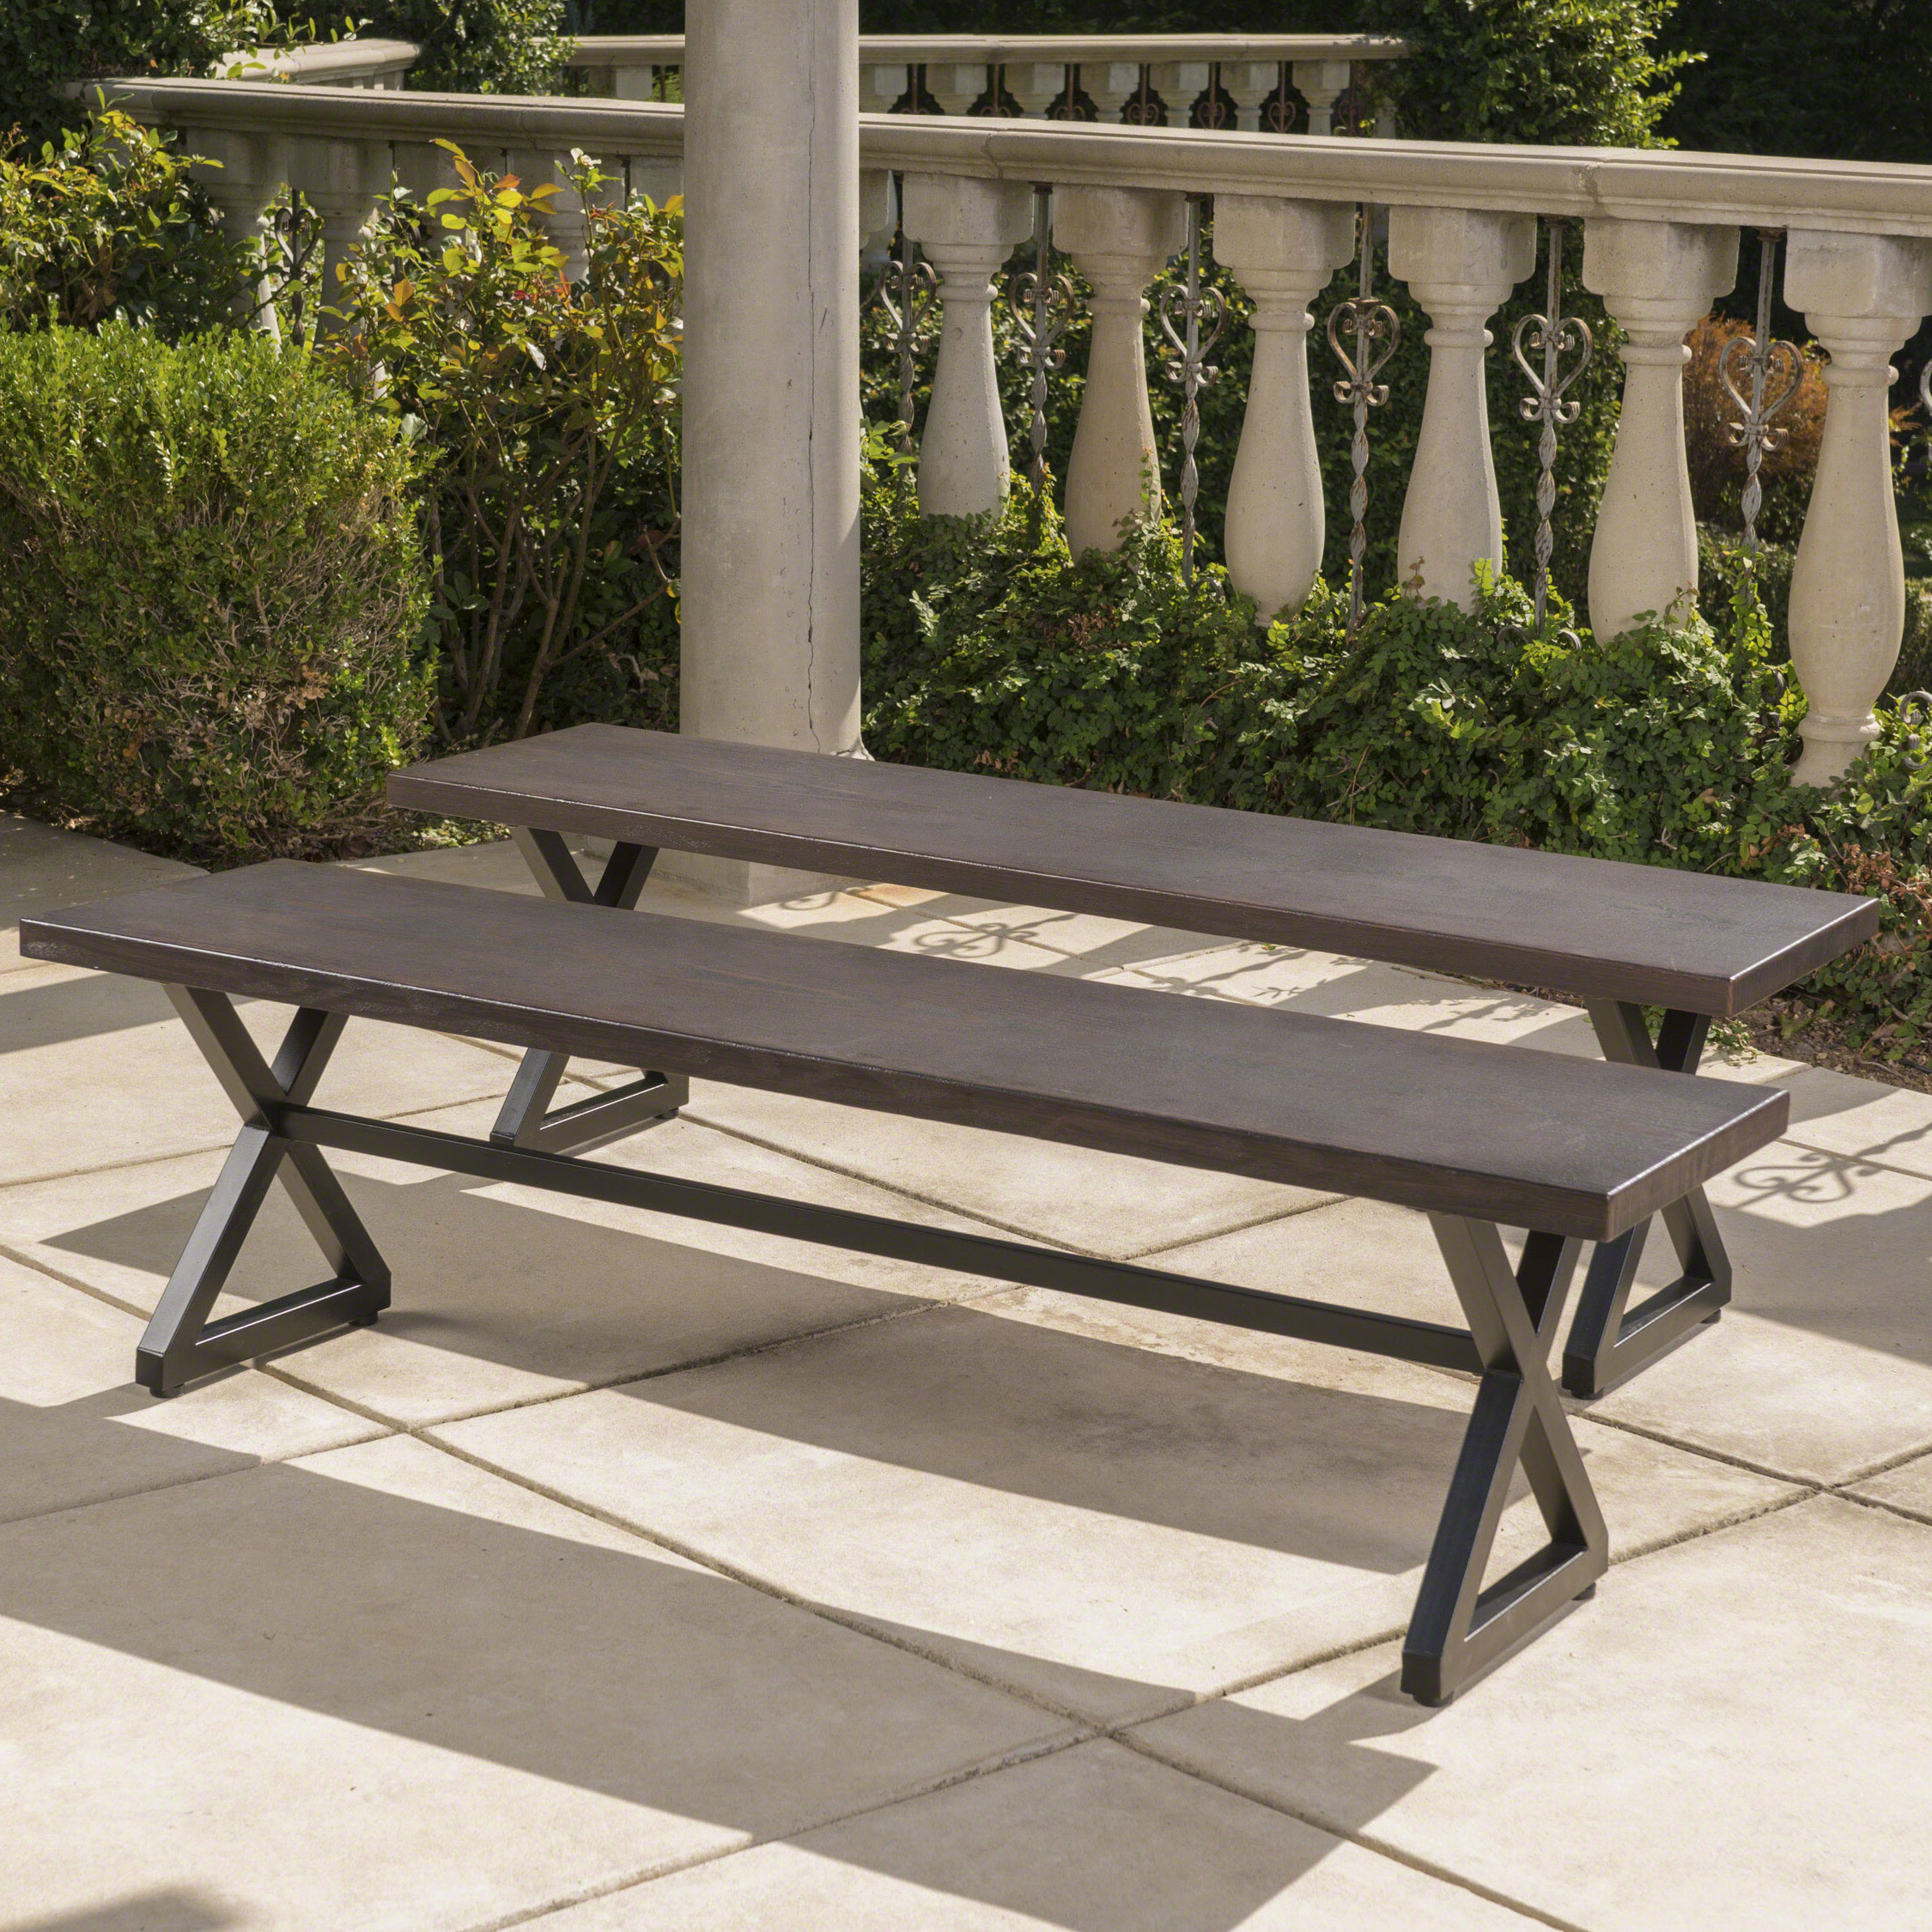 Lal Outdoor Aluminum Picnic Bench With Regard To 2019 Guyapi Garden Benches (View 17 of 30)